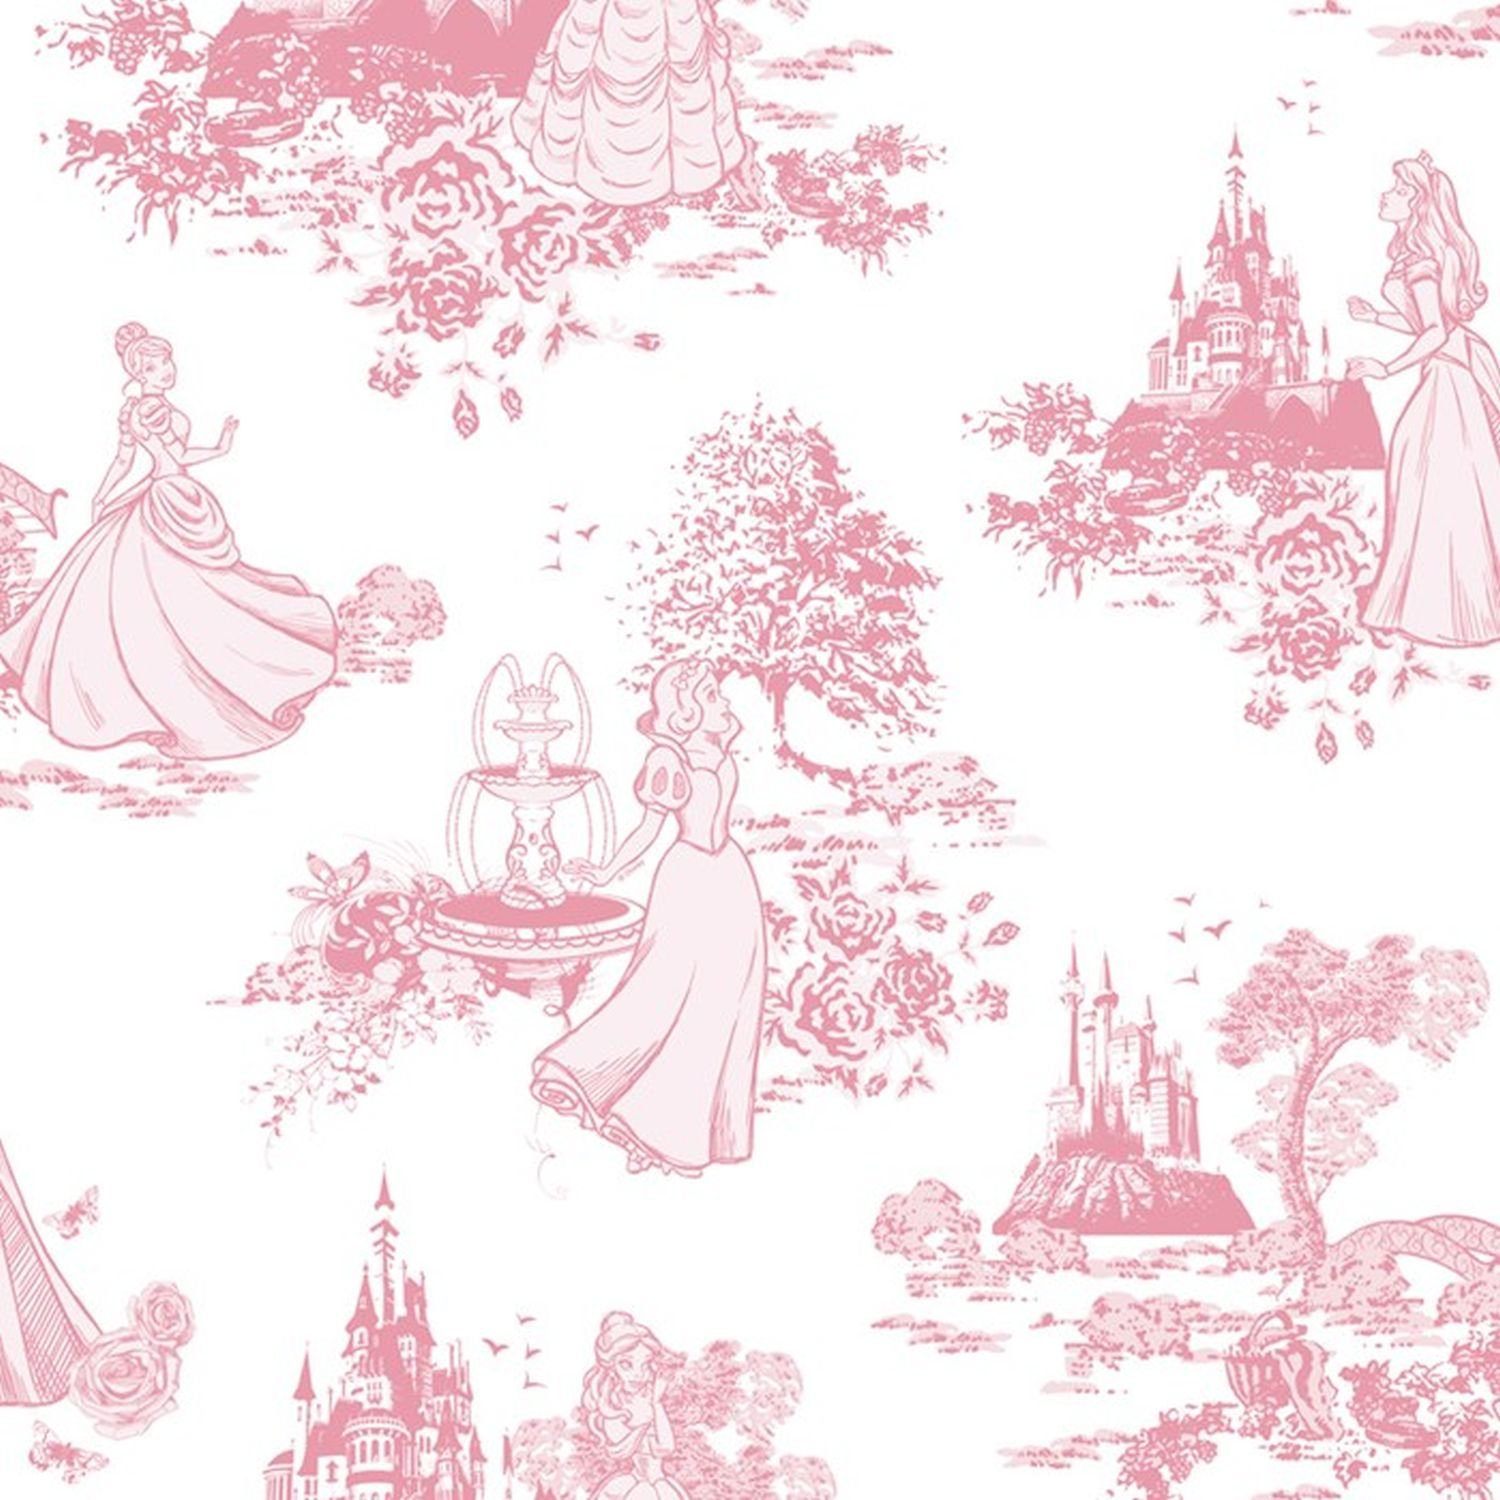 Disney Princess Toile Pink Wallpaper Amazoncouk DIY Tools